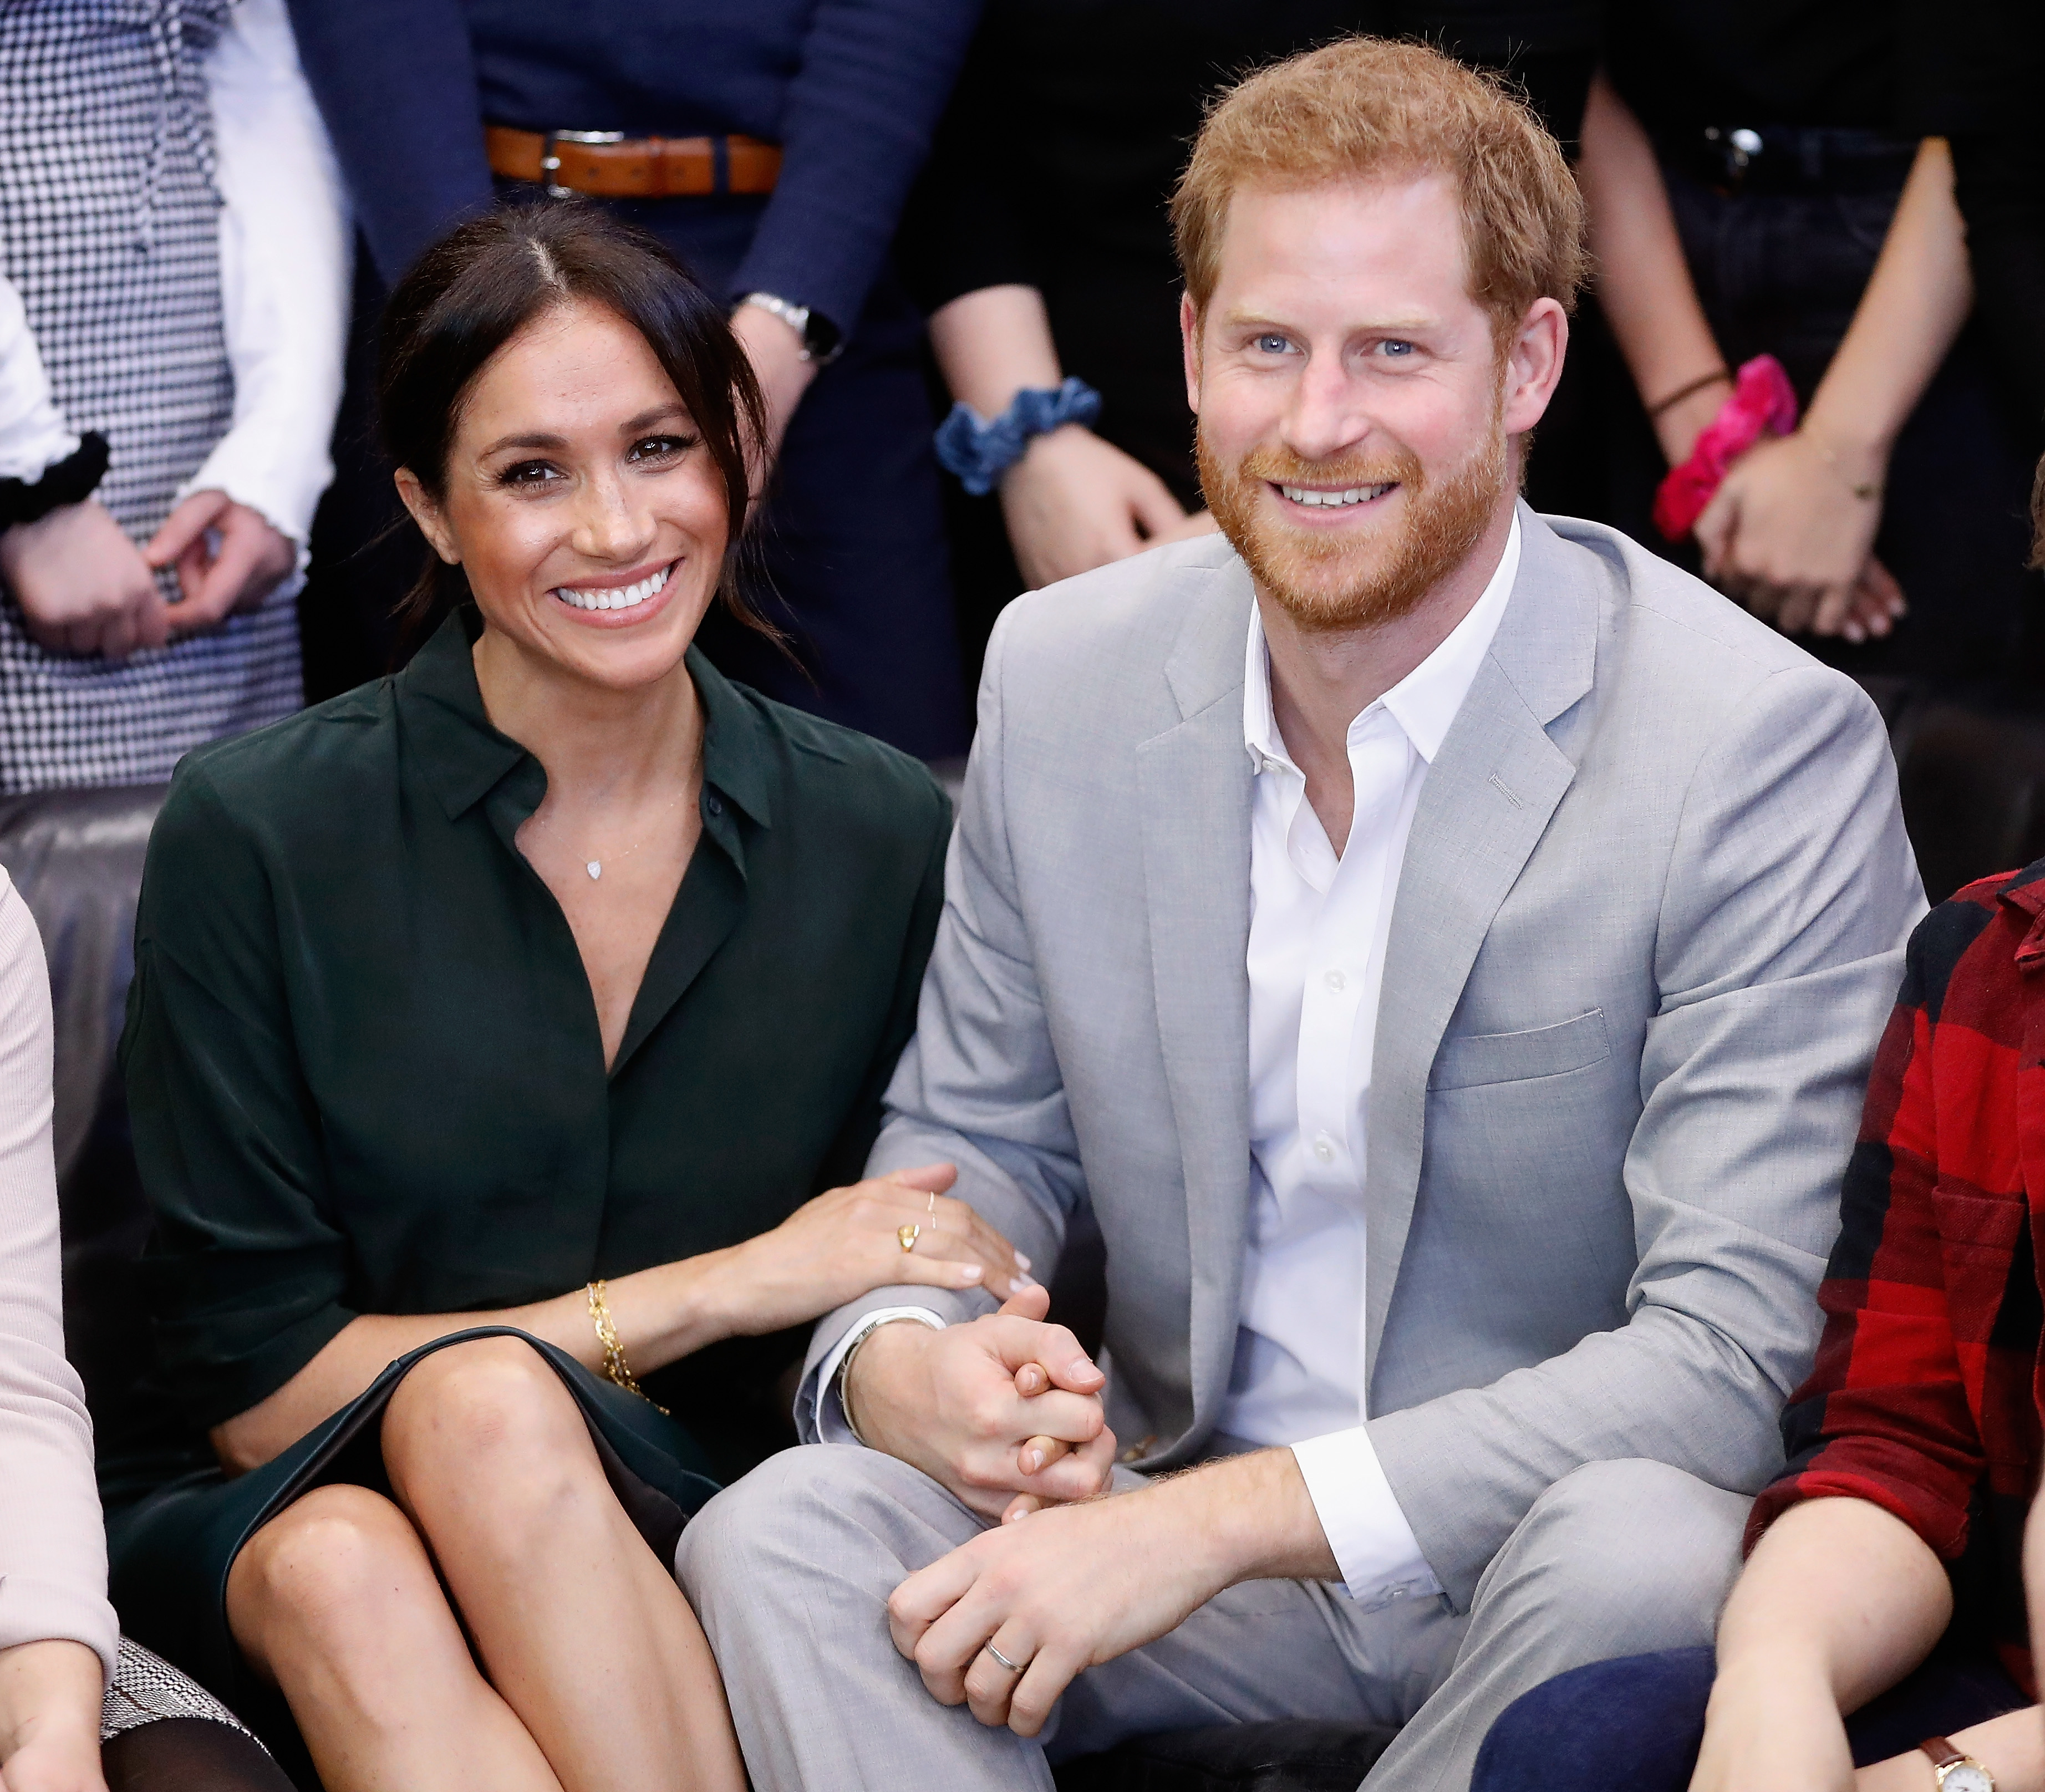 Meghan, Duchess of Sussex and Prince Harry, Duke of Sussex (Source: Getty Images)